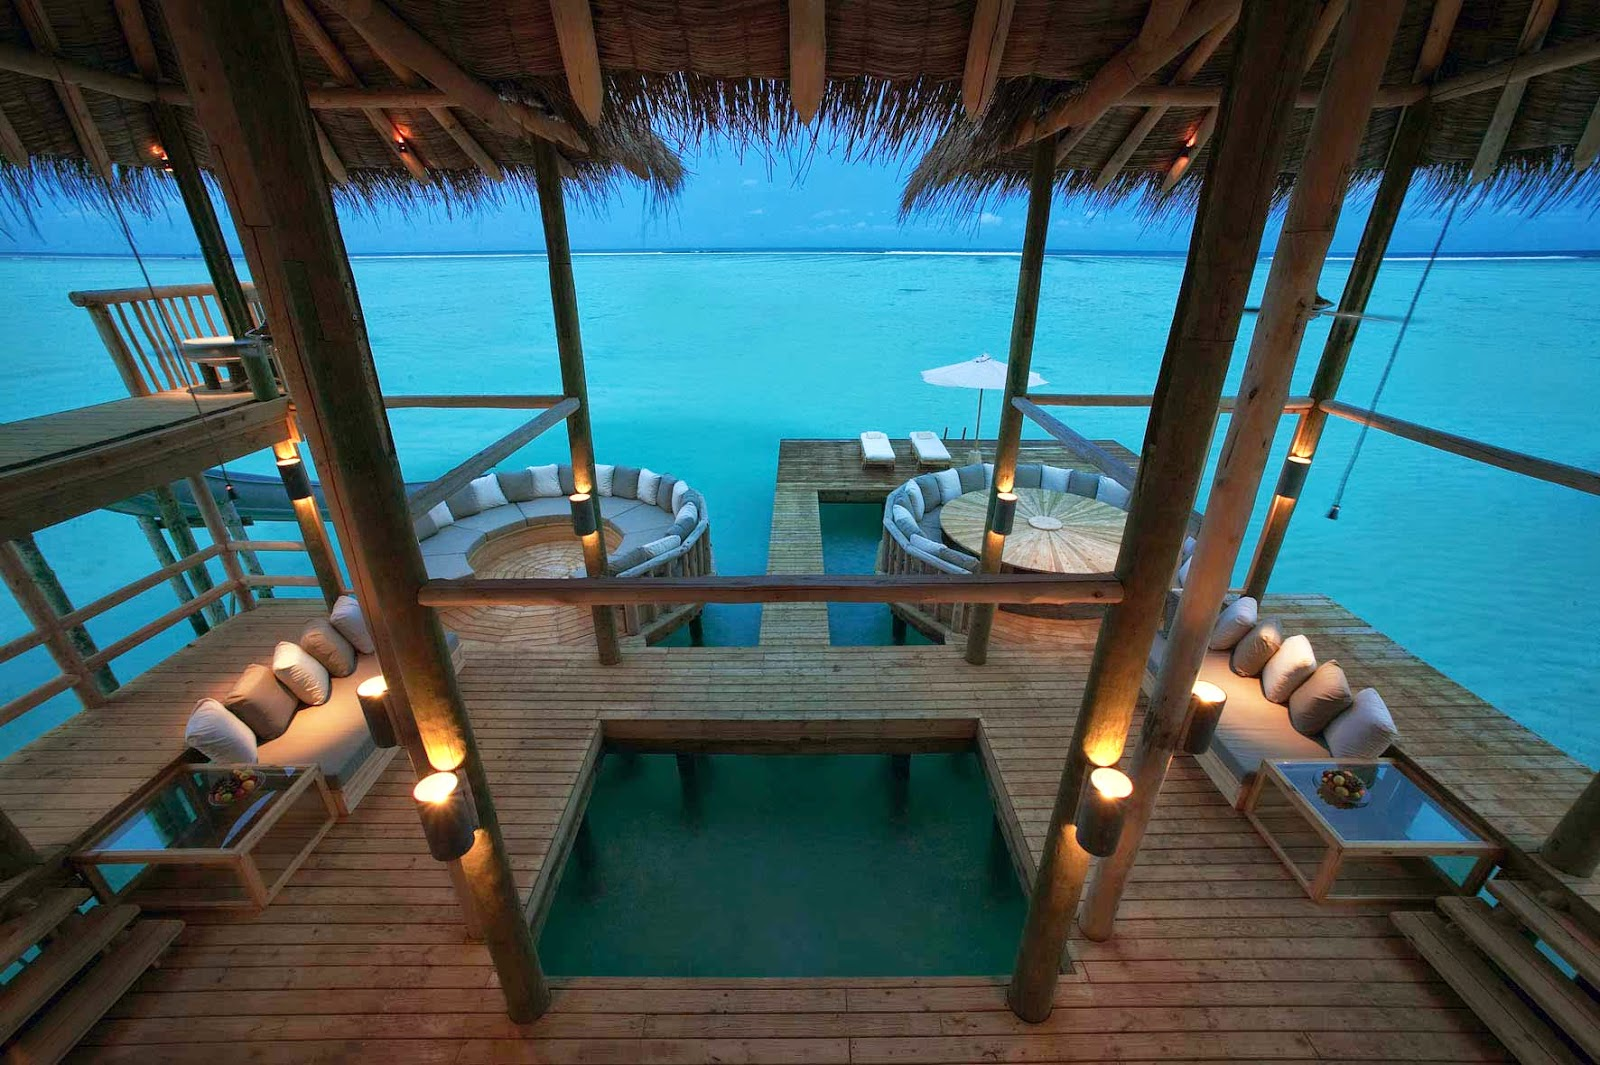 Top 5 Best Resorts For Honeymoon In The Maldives